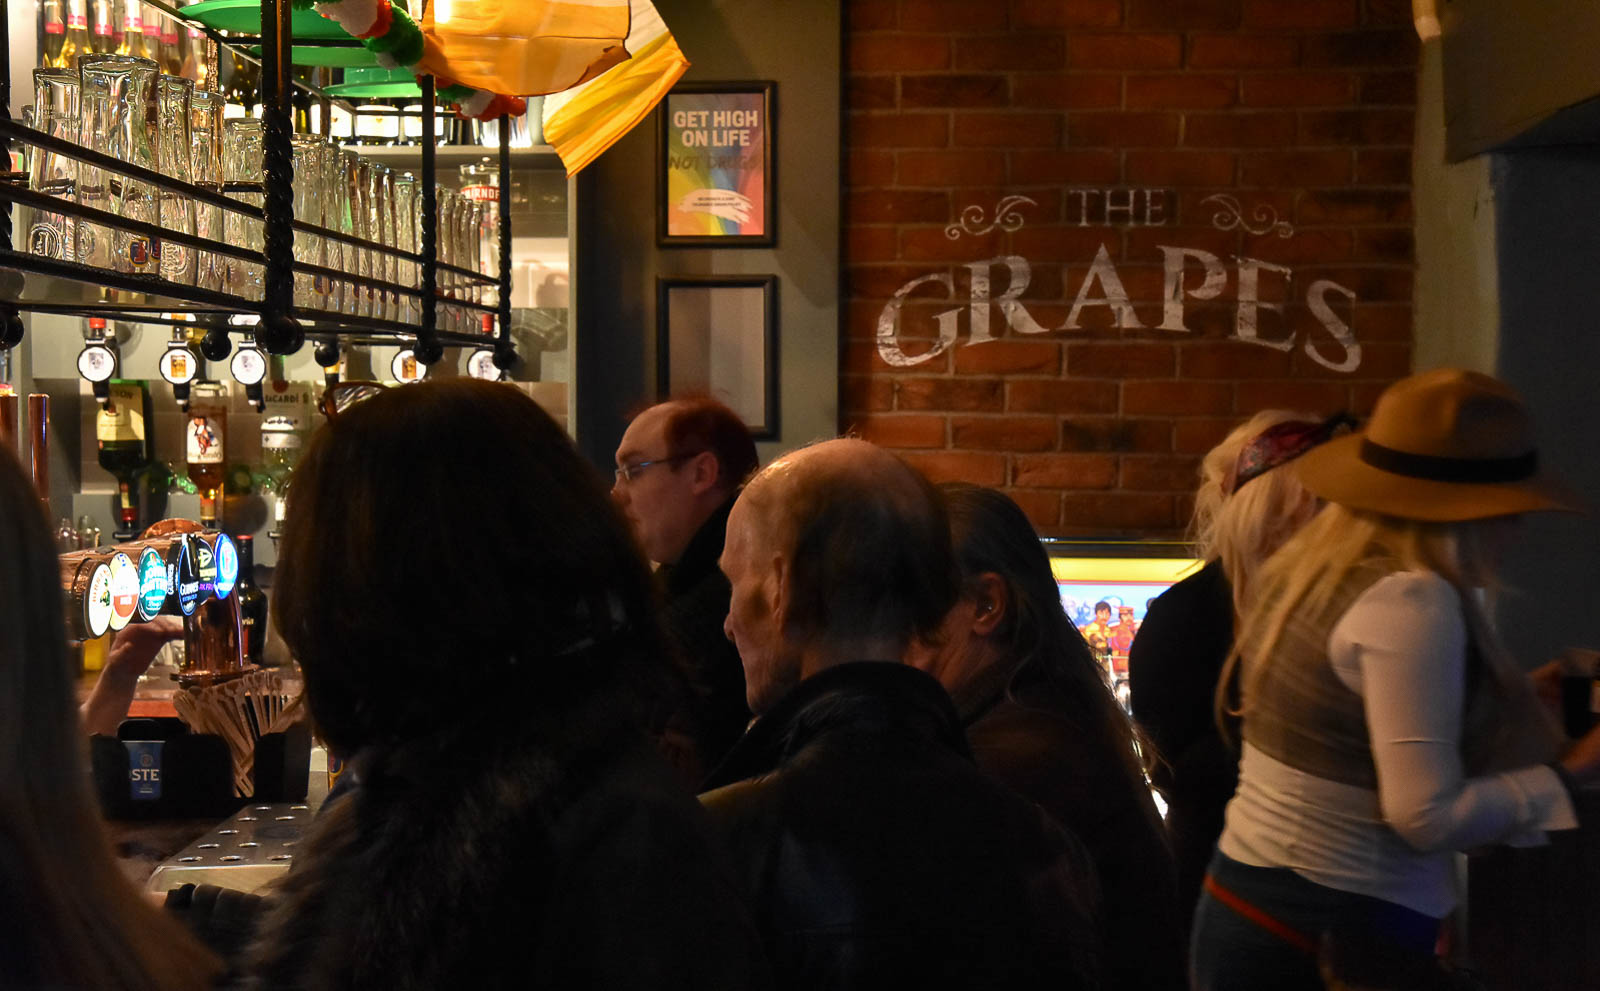 The Grapes Liverpool